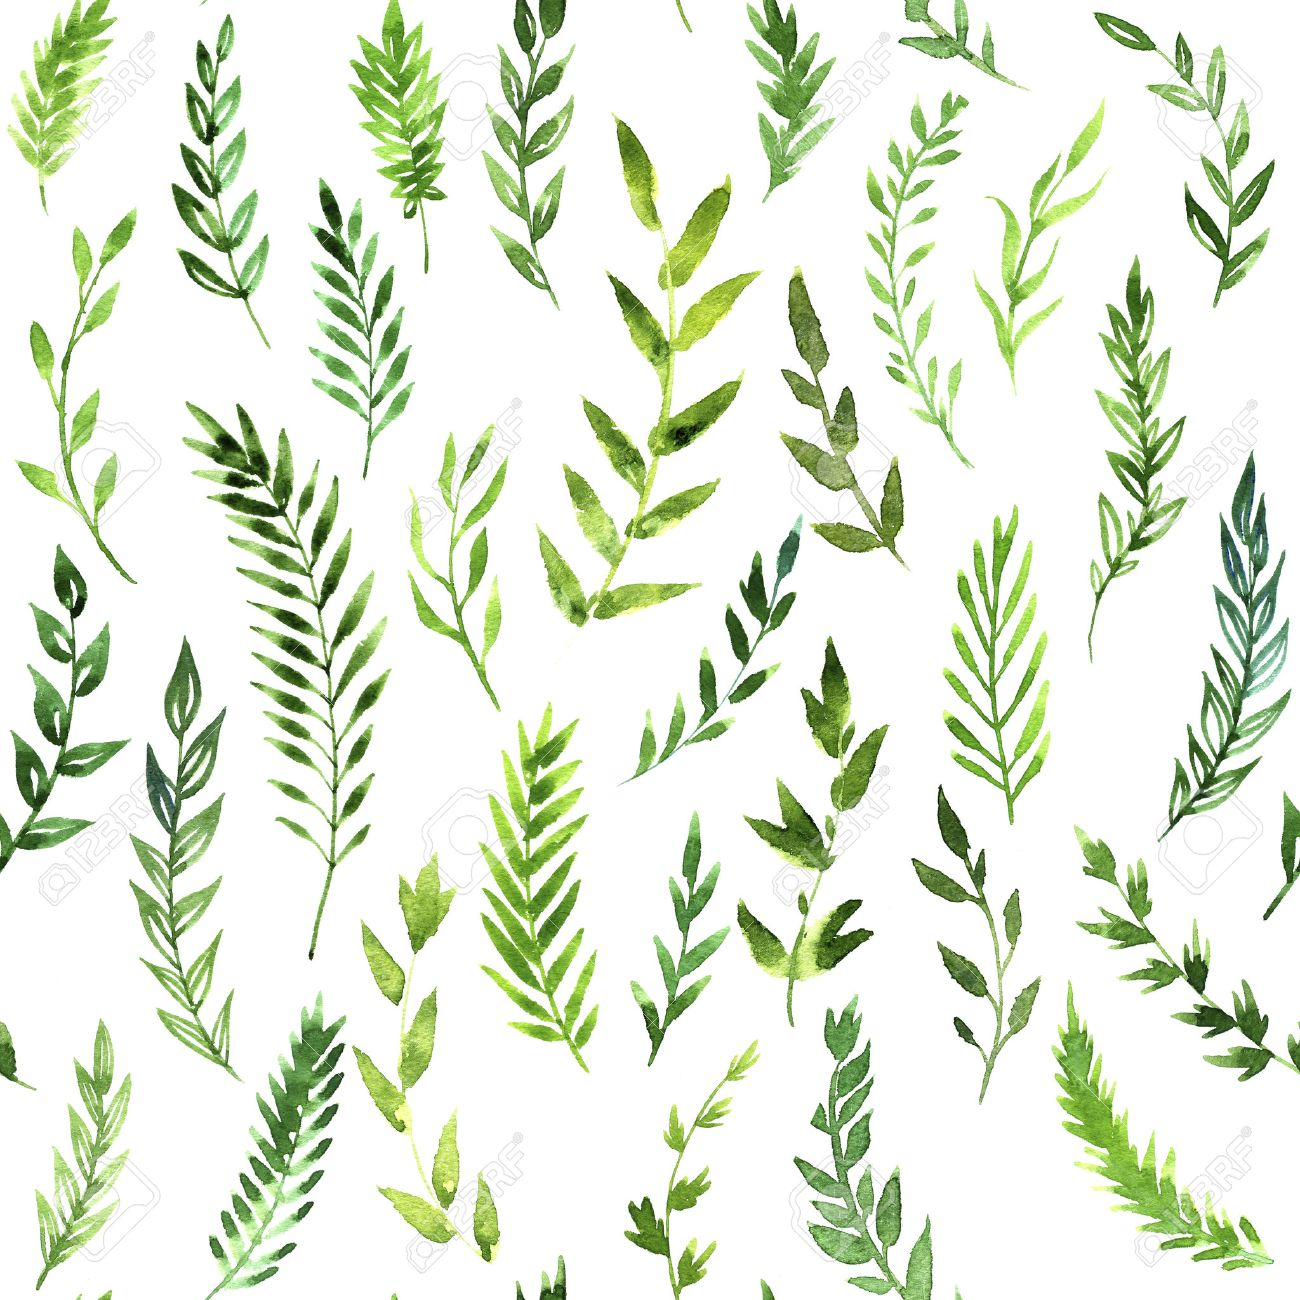 Seamless Pattern With Green Leaves Abstract Branches Drawing Stock Photo Picture And Royalty Free Image Image 43871987